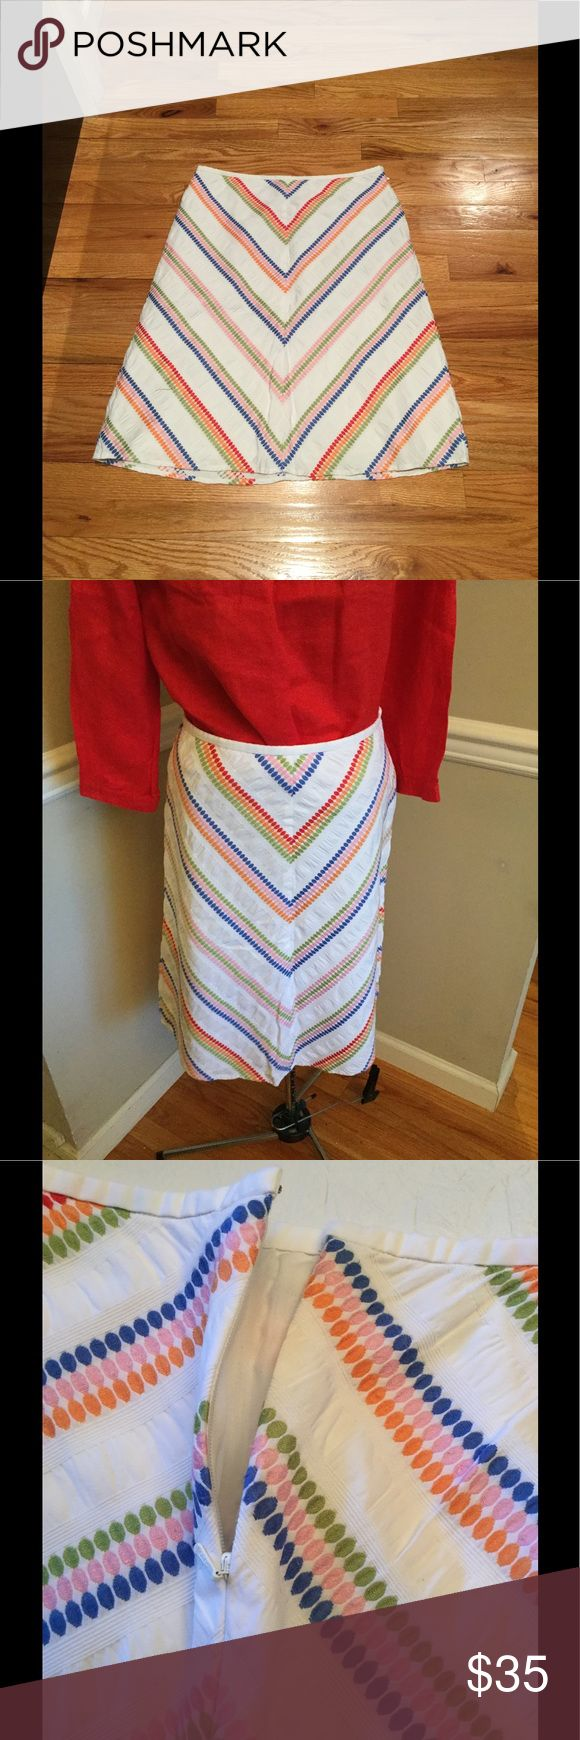 💓Talbots cotton lined A-Line Fabulous Skirt💓 What a fabulous skirt lined in cotton beautiful details . Side hidden zipper with hook and eye closure. Excellent condition. Too small for me but love this skirt! Size 8. Smoke free closet. No damages. Like brand new condition,  waist 15; hips 21 1/4; length 23 3/4 inches. Talbots Skirts A-Line or Full